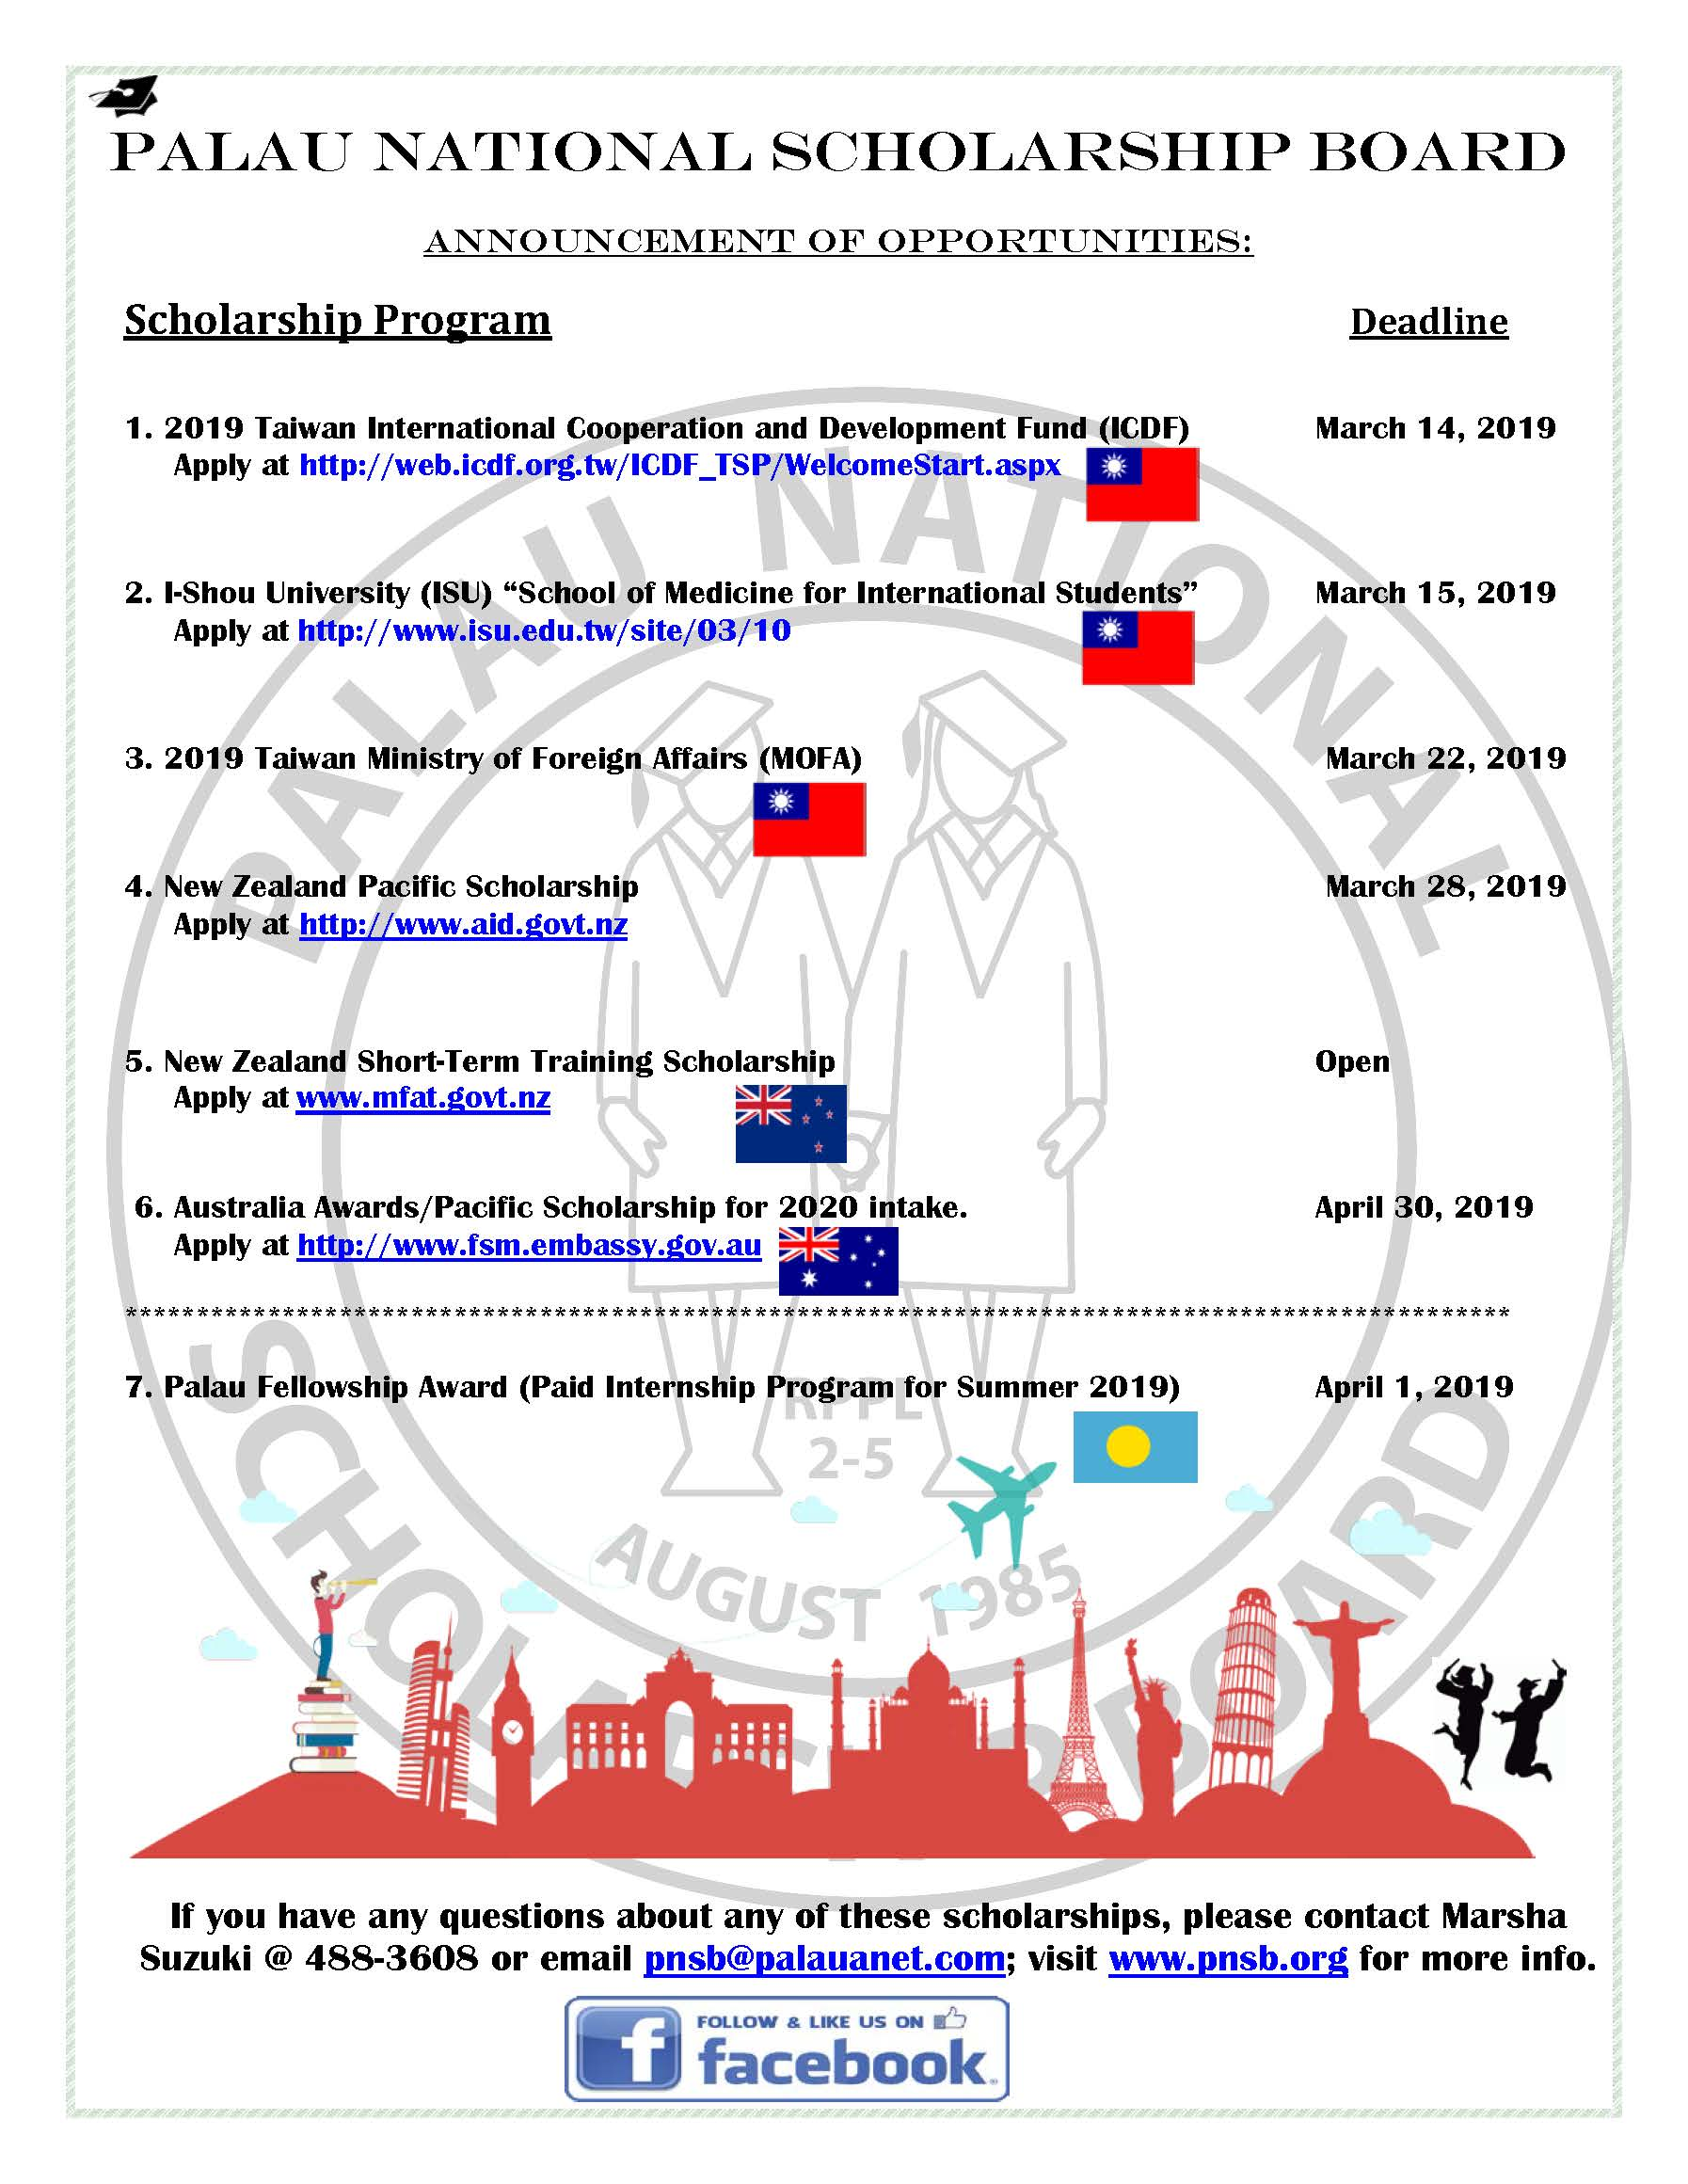 Available Scholarships for 2019! Hurry and apply now